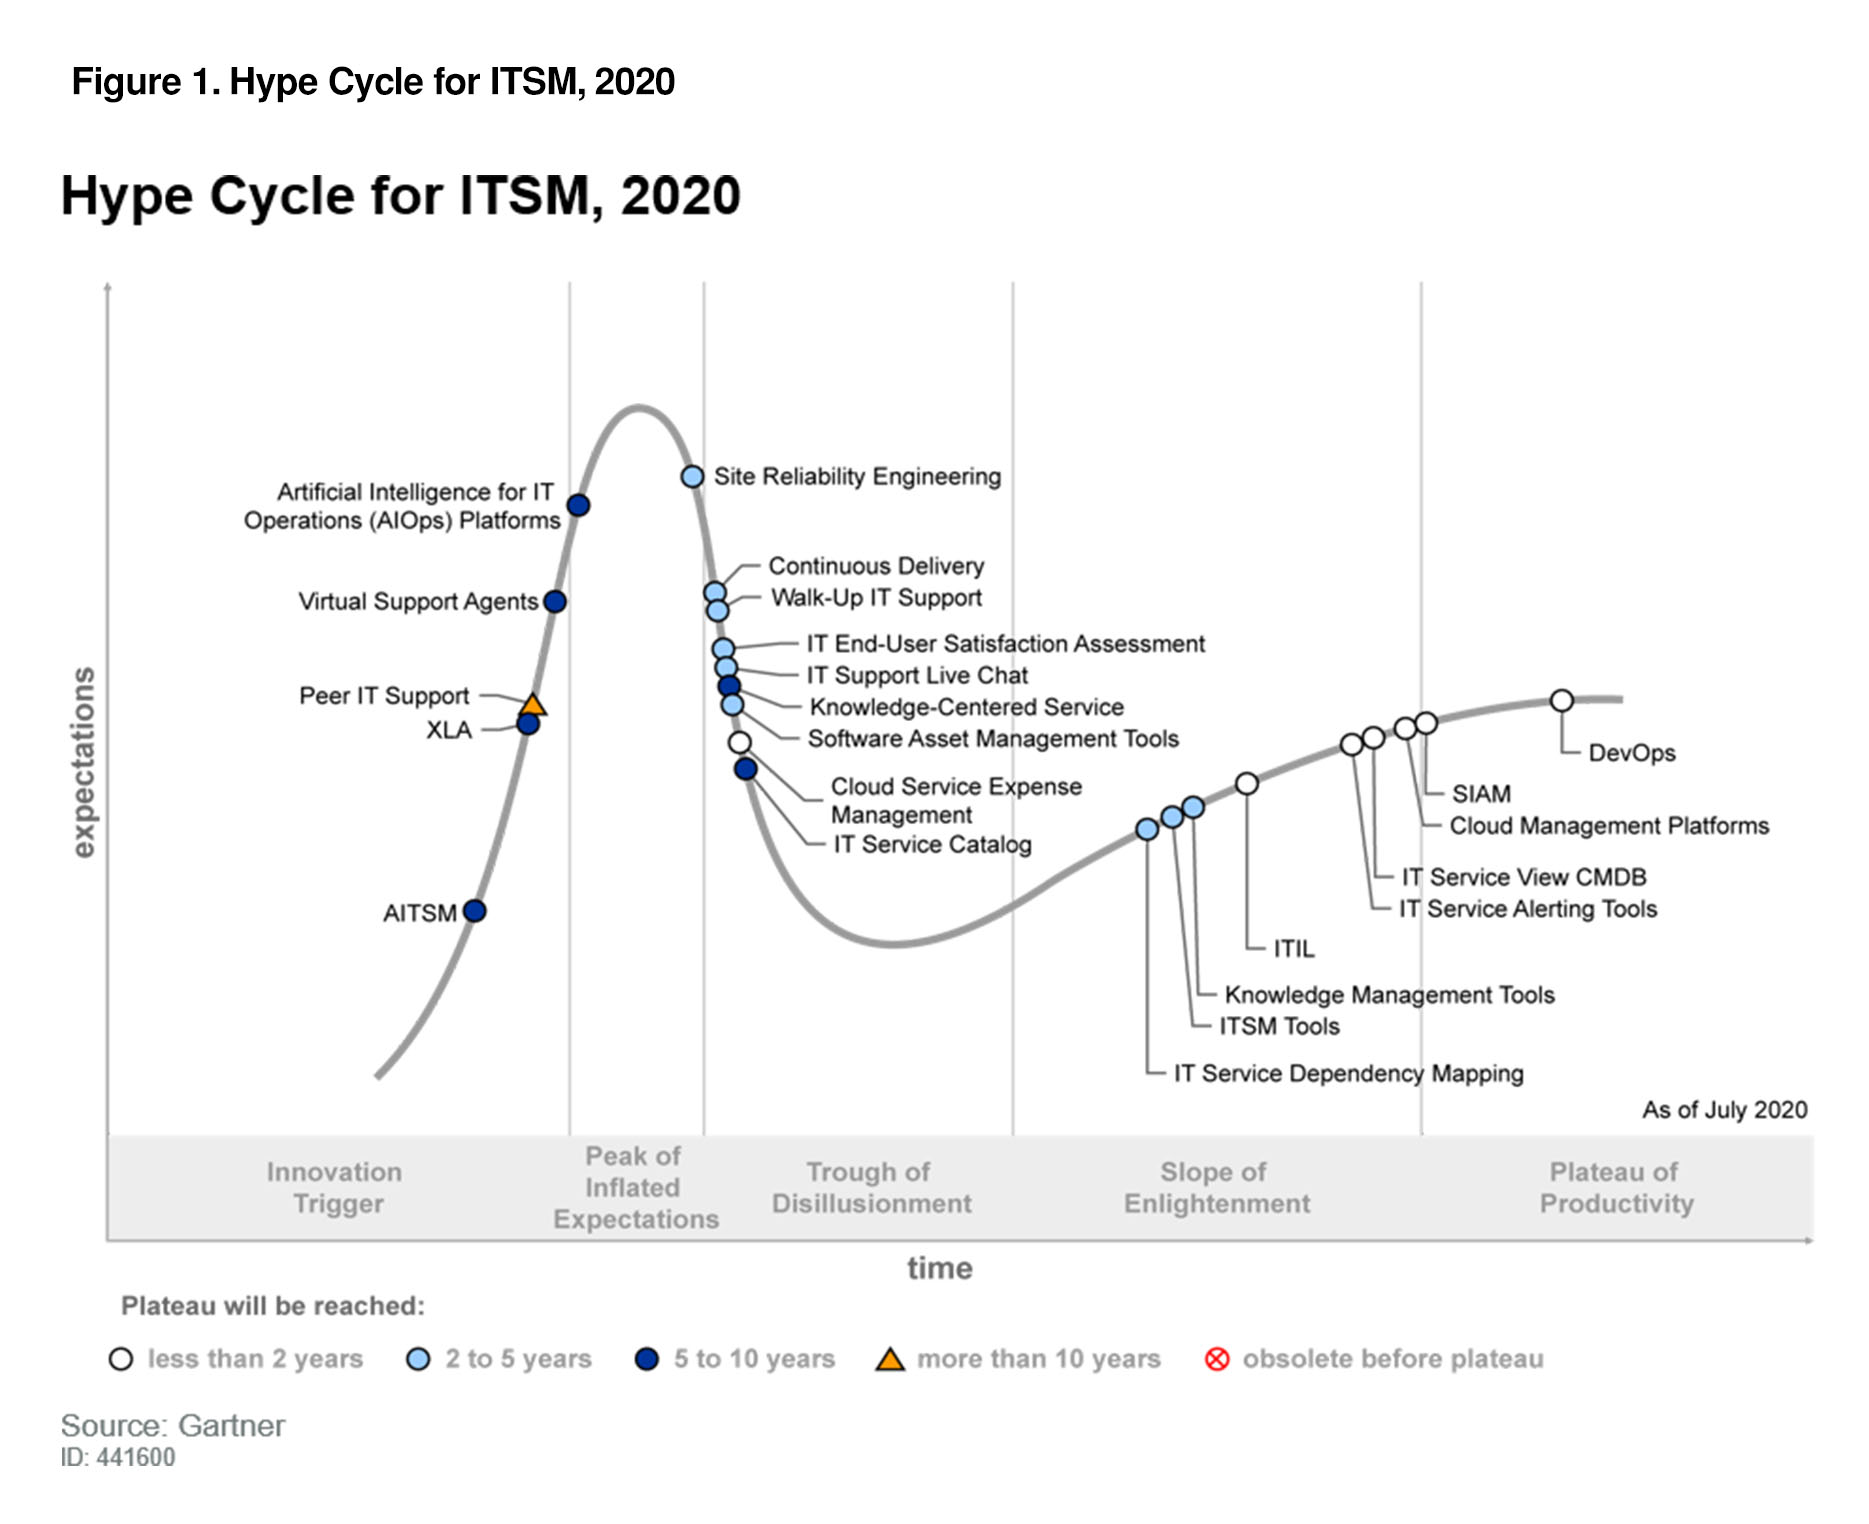 Gartner Hype Cycle for ITSM 2020